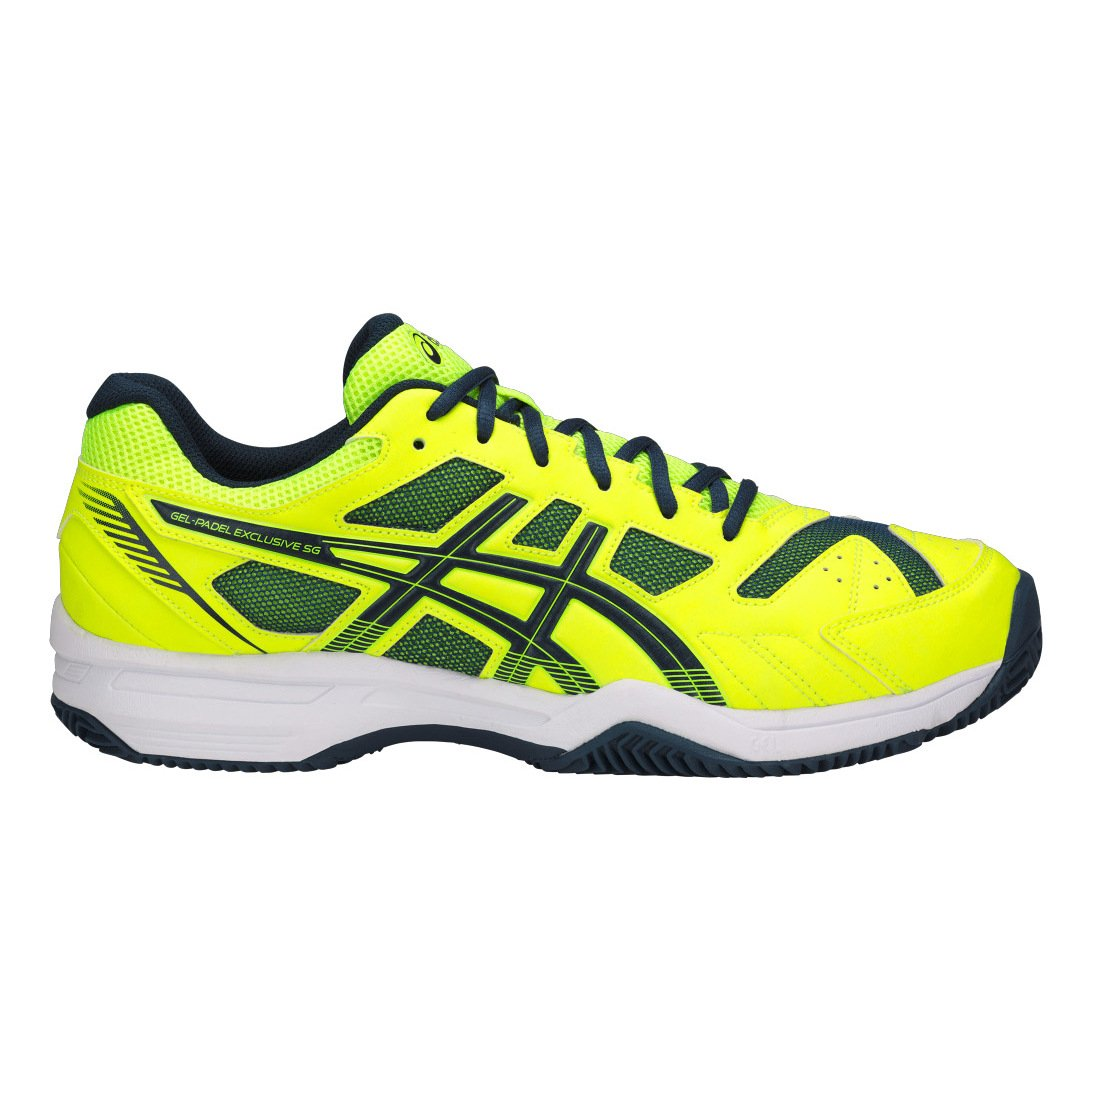 ASICS Gel Padel Exclusive 4 SG Amarillo Gris E515N 0749: Amazon.es ...